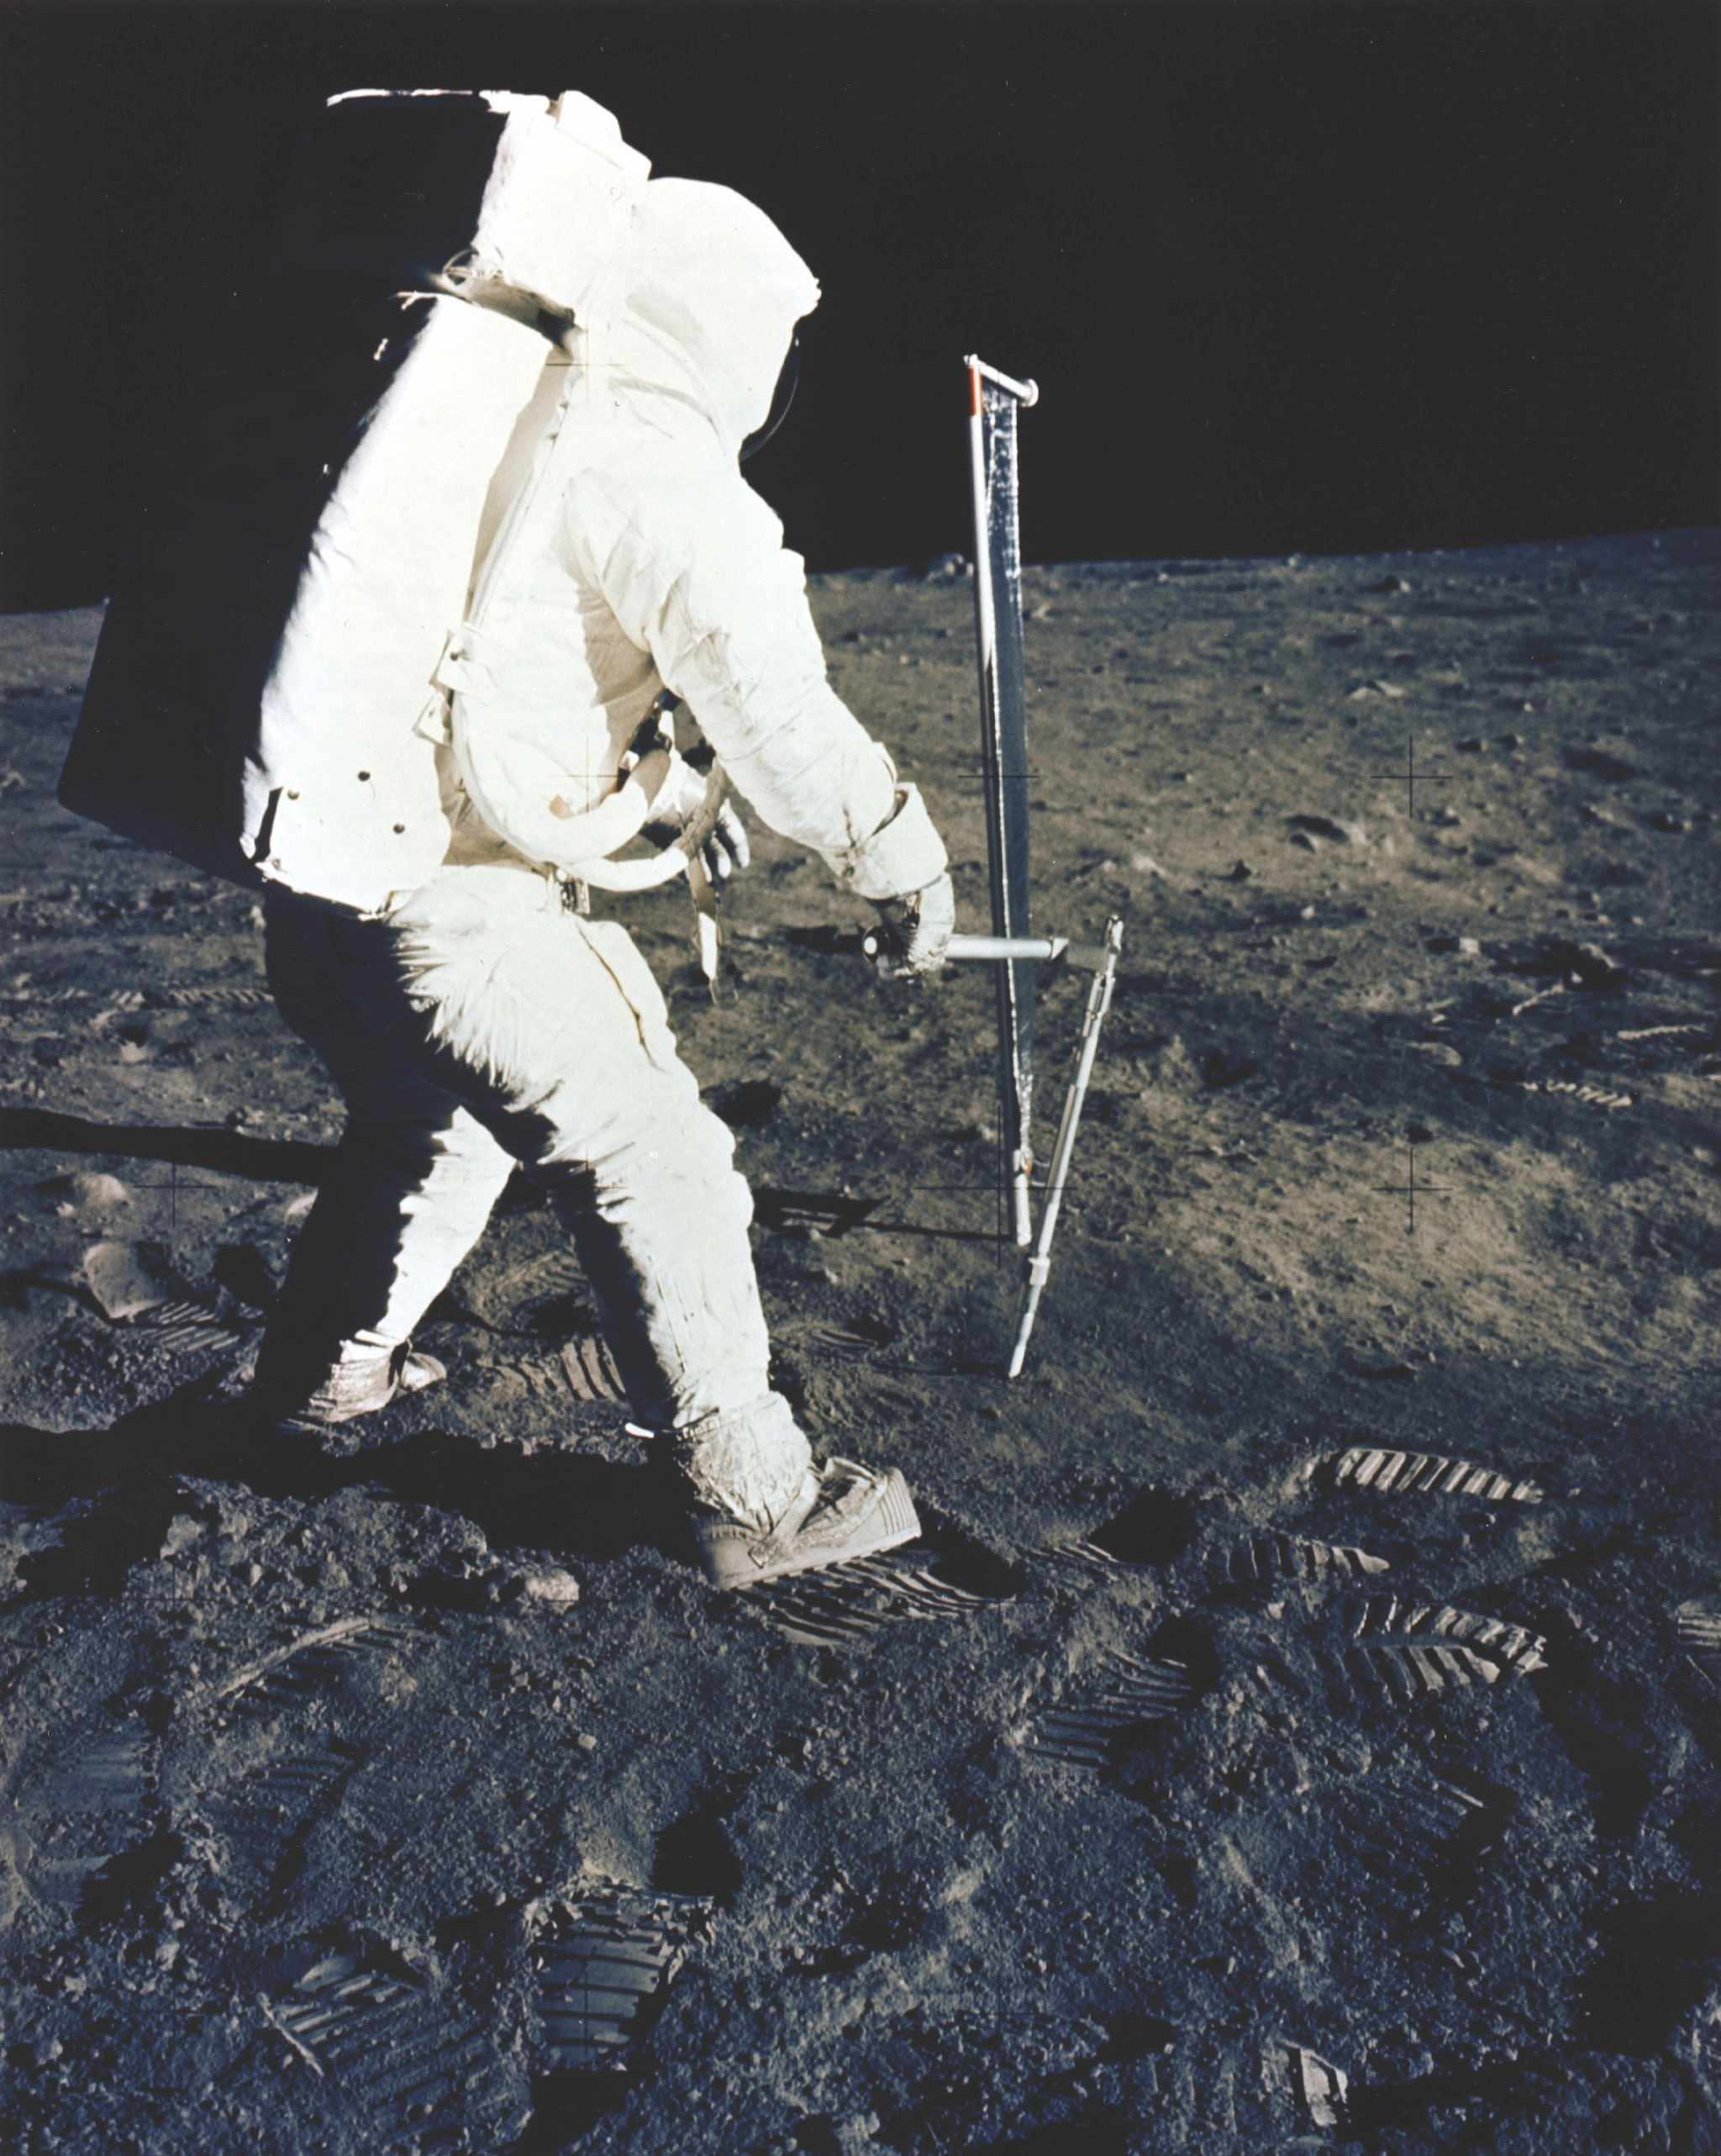 The solar wind experiment measured the abundances and isotopes of solar wind particles, particularly the noble gases helium, neon and argon. It was made of very thin aluminium foil. Solar wind particles travelling at hundreds of kilometres a second penetrated the foil and got trapped. The experiment was set up about six metres from the lunar module and packed up after 77 minutes on the surface. The foil was analysed in a mass spectrometer back on Earth and revealed a more detailed picture of the solar wind's particles than earlier remote experiments had. © NASA/JPL